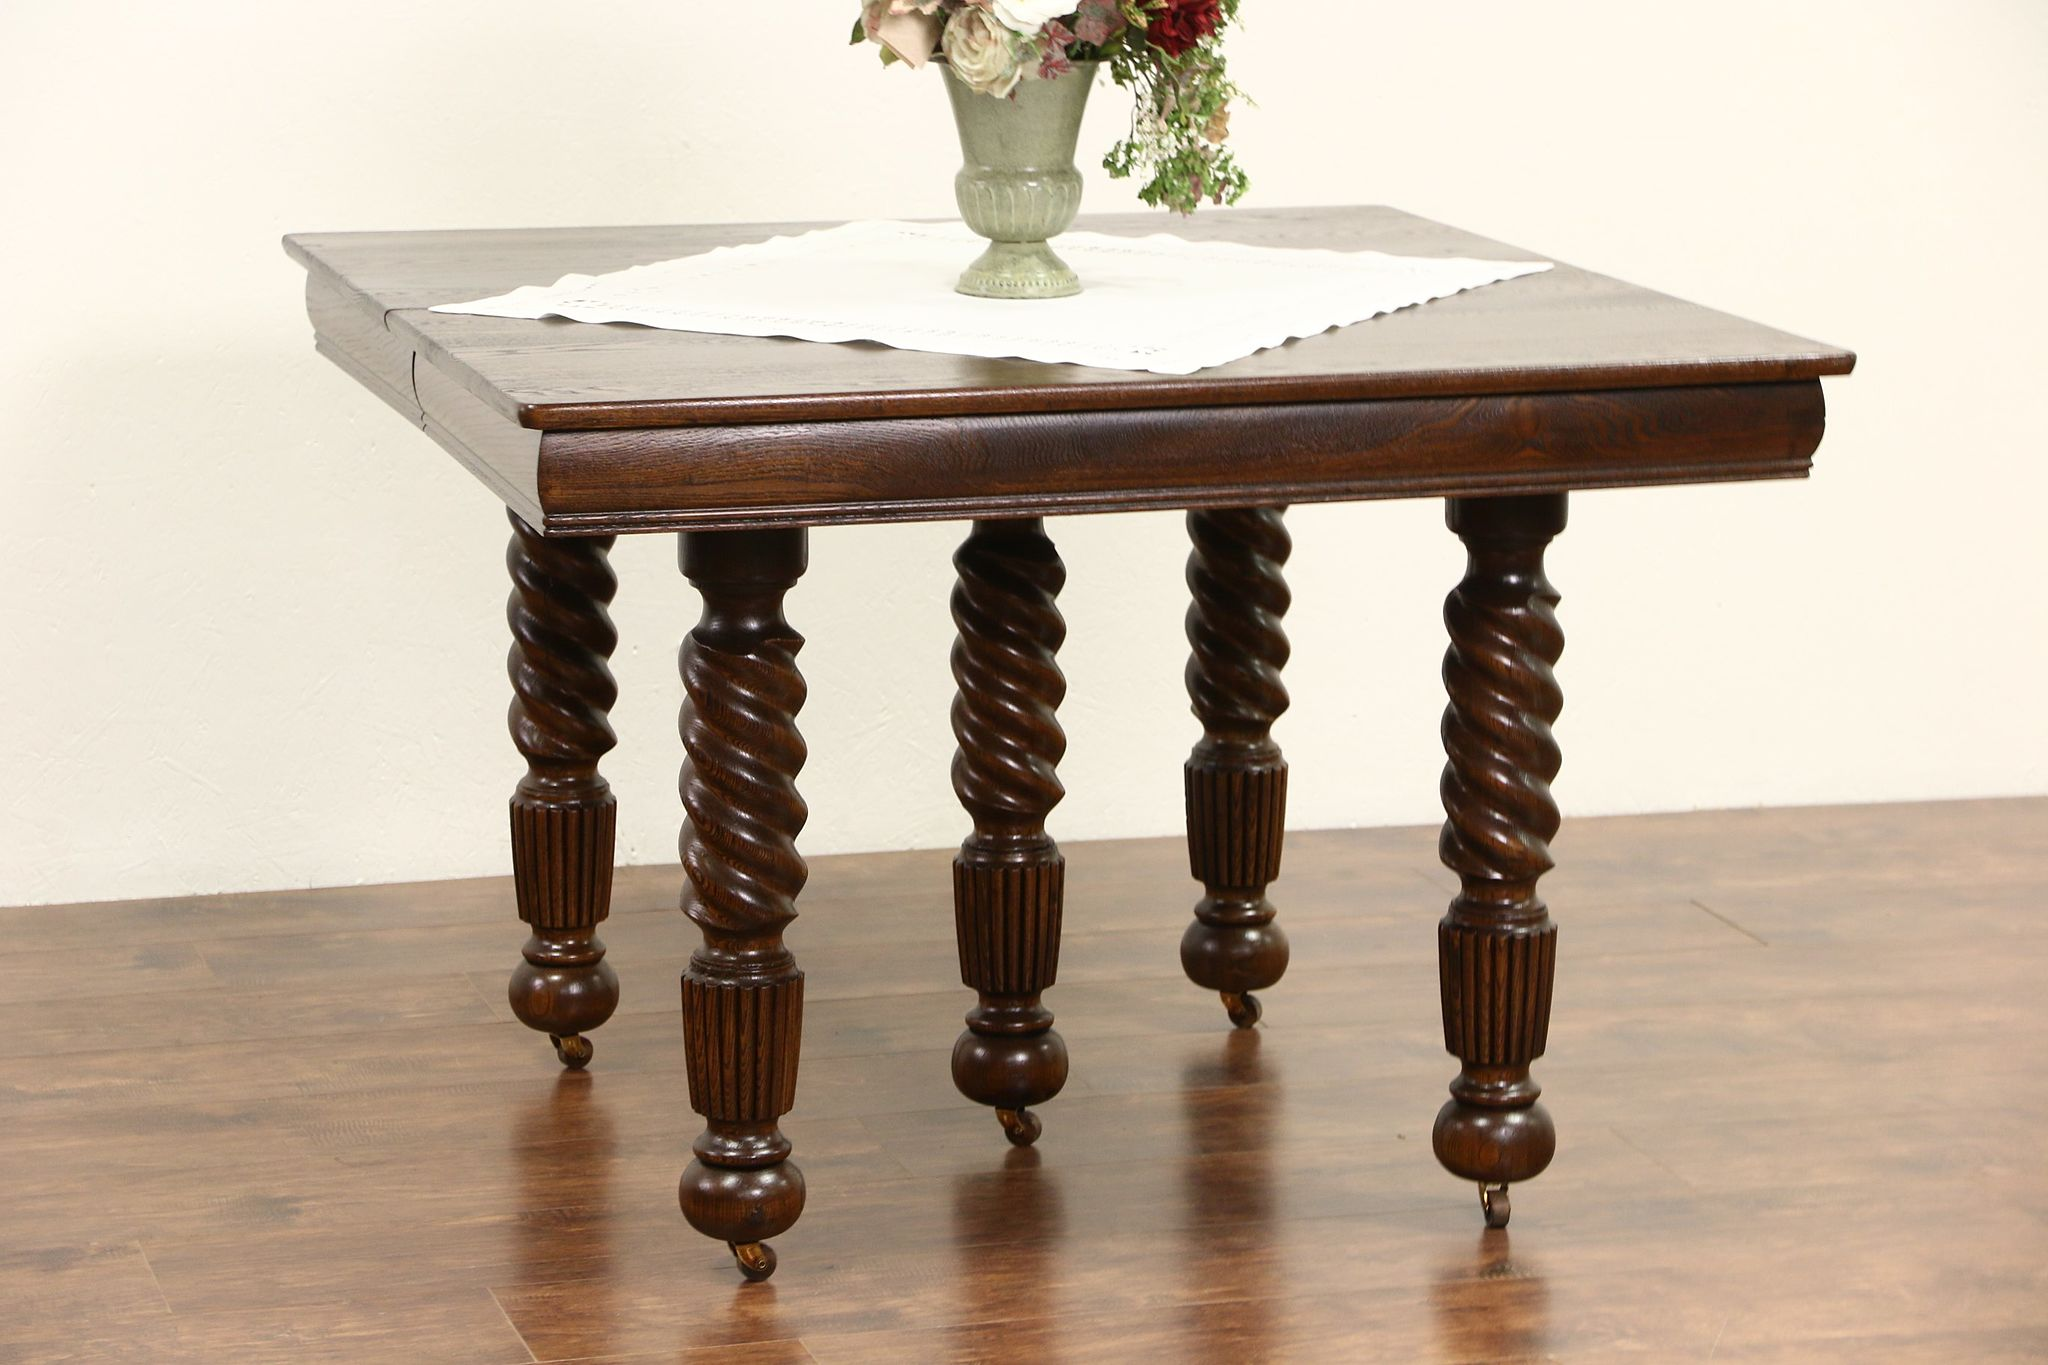 Oak 1900 Antique Square Dining Table, 4 Leaves, 5 Spiral Legs Extends 7\'